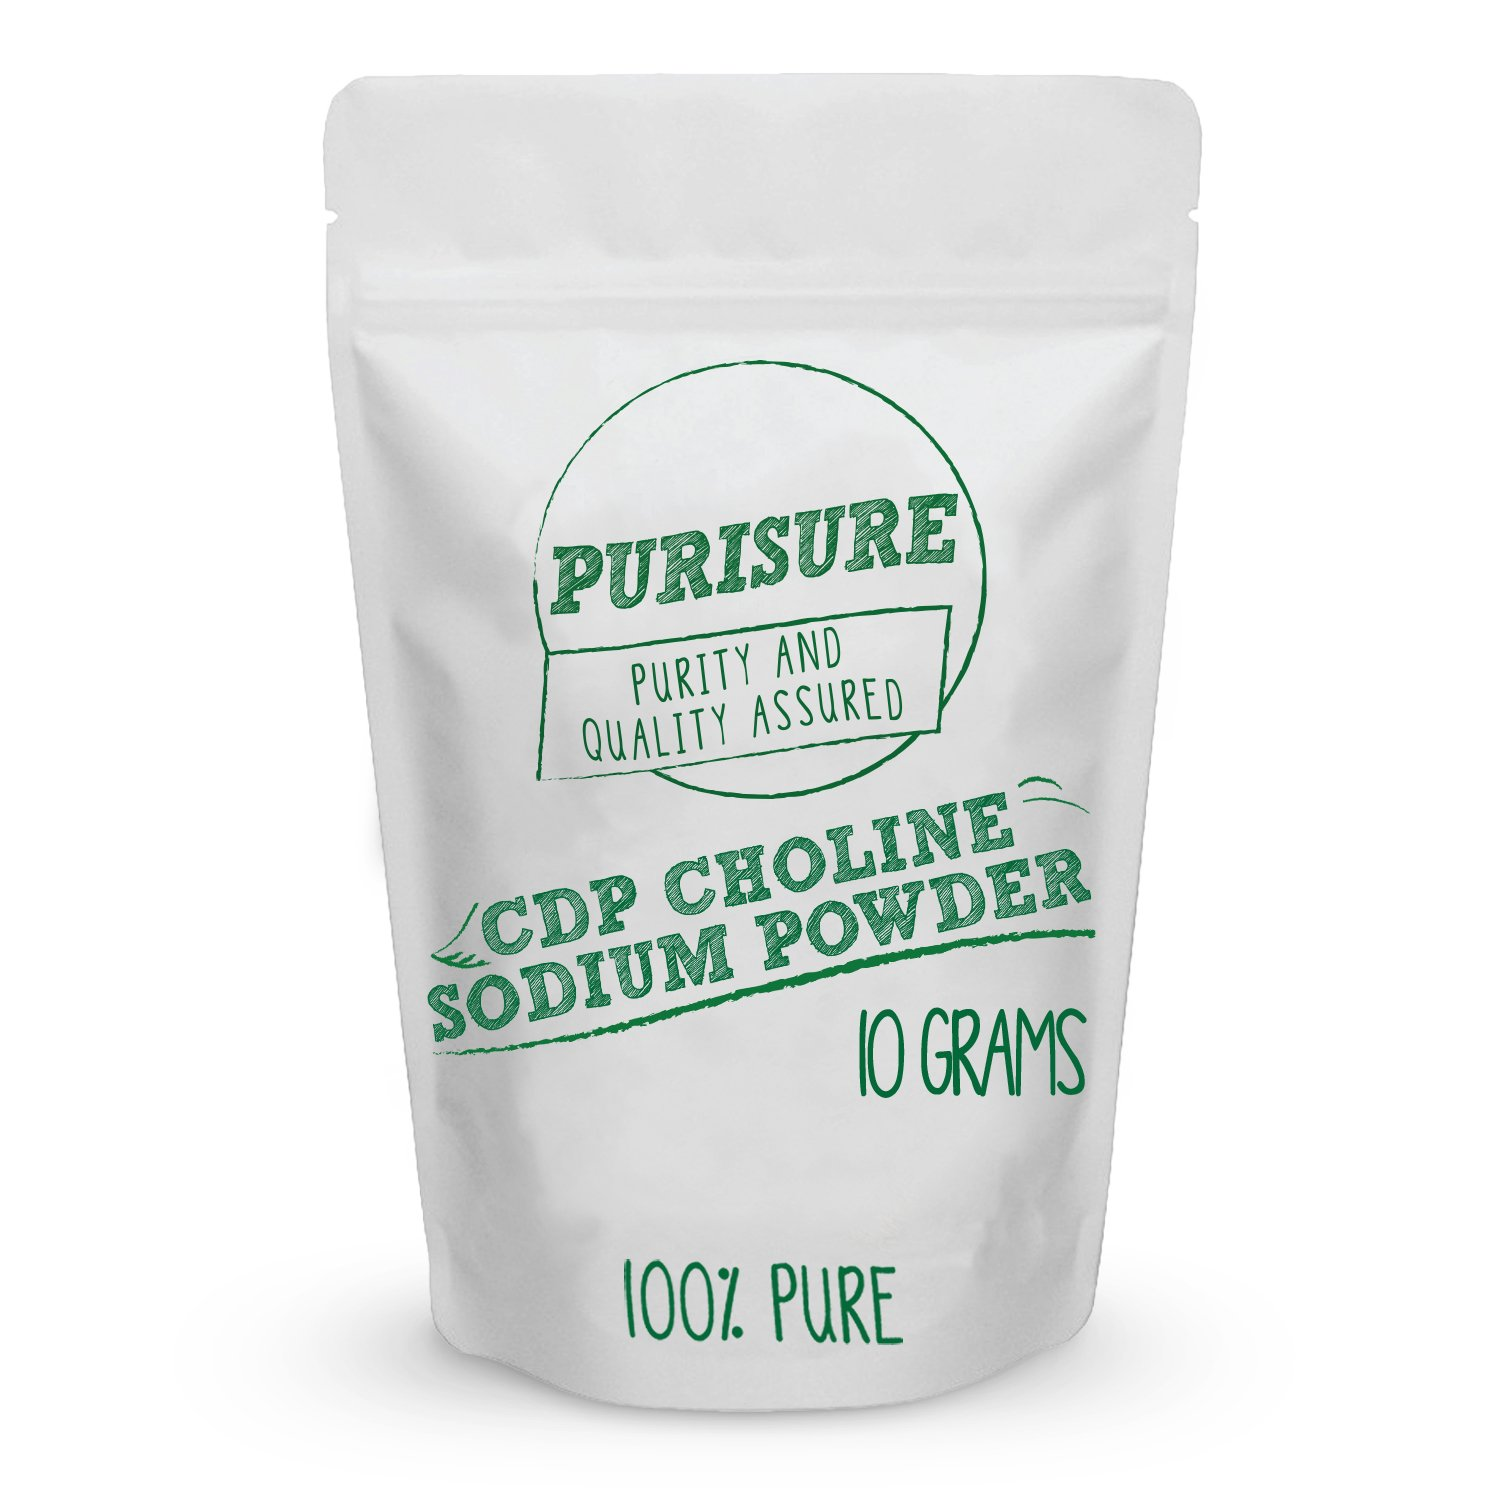 CDP Choline Powder (Citicoline Sodium) 10g (40 Servings), Promotes Cognitive Efficiency, Boosts Mental and Physical Energy, Nootropic, Increases Uridine